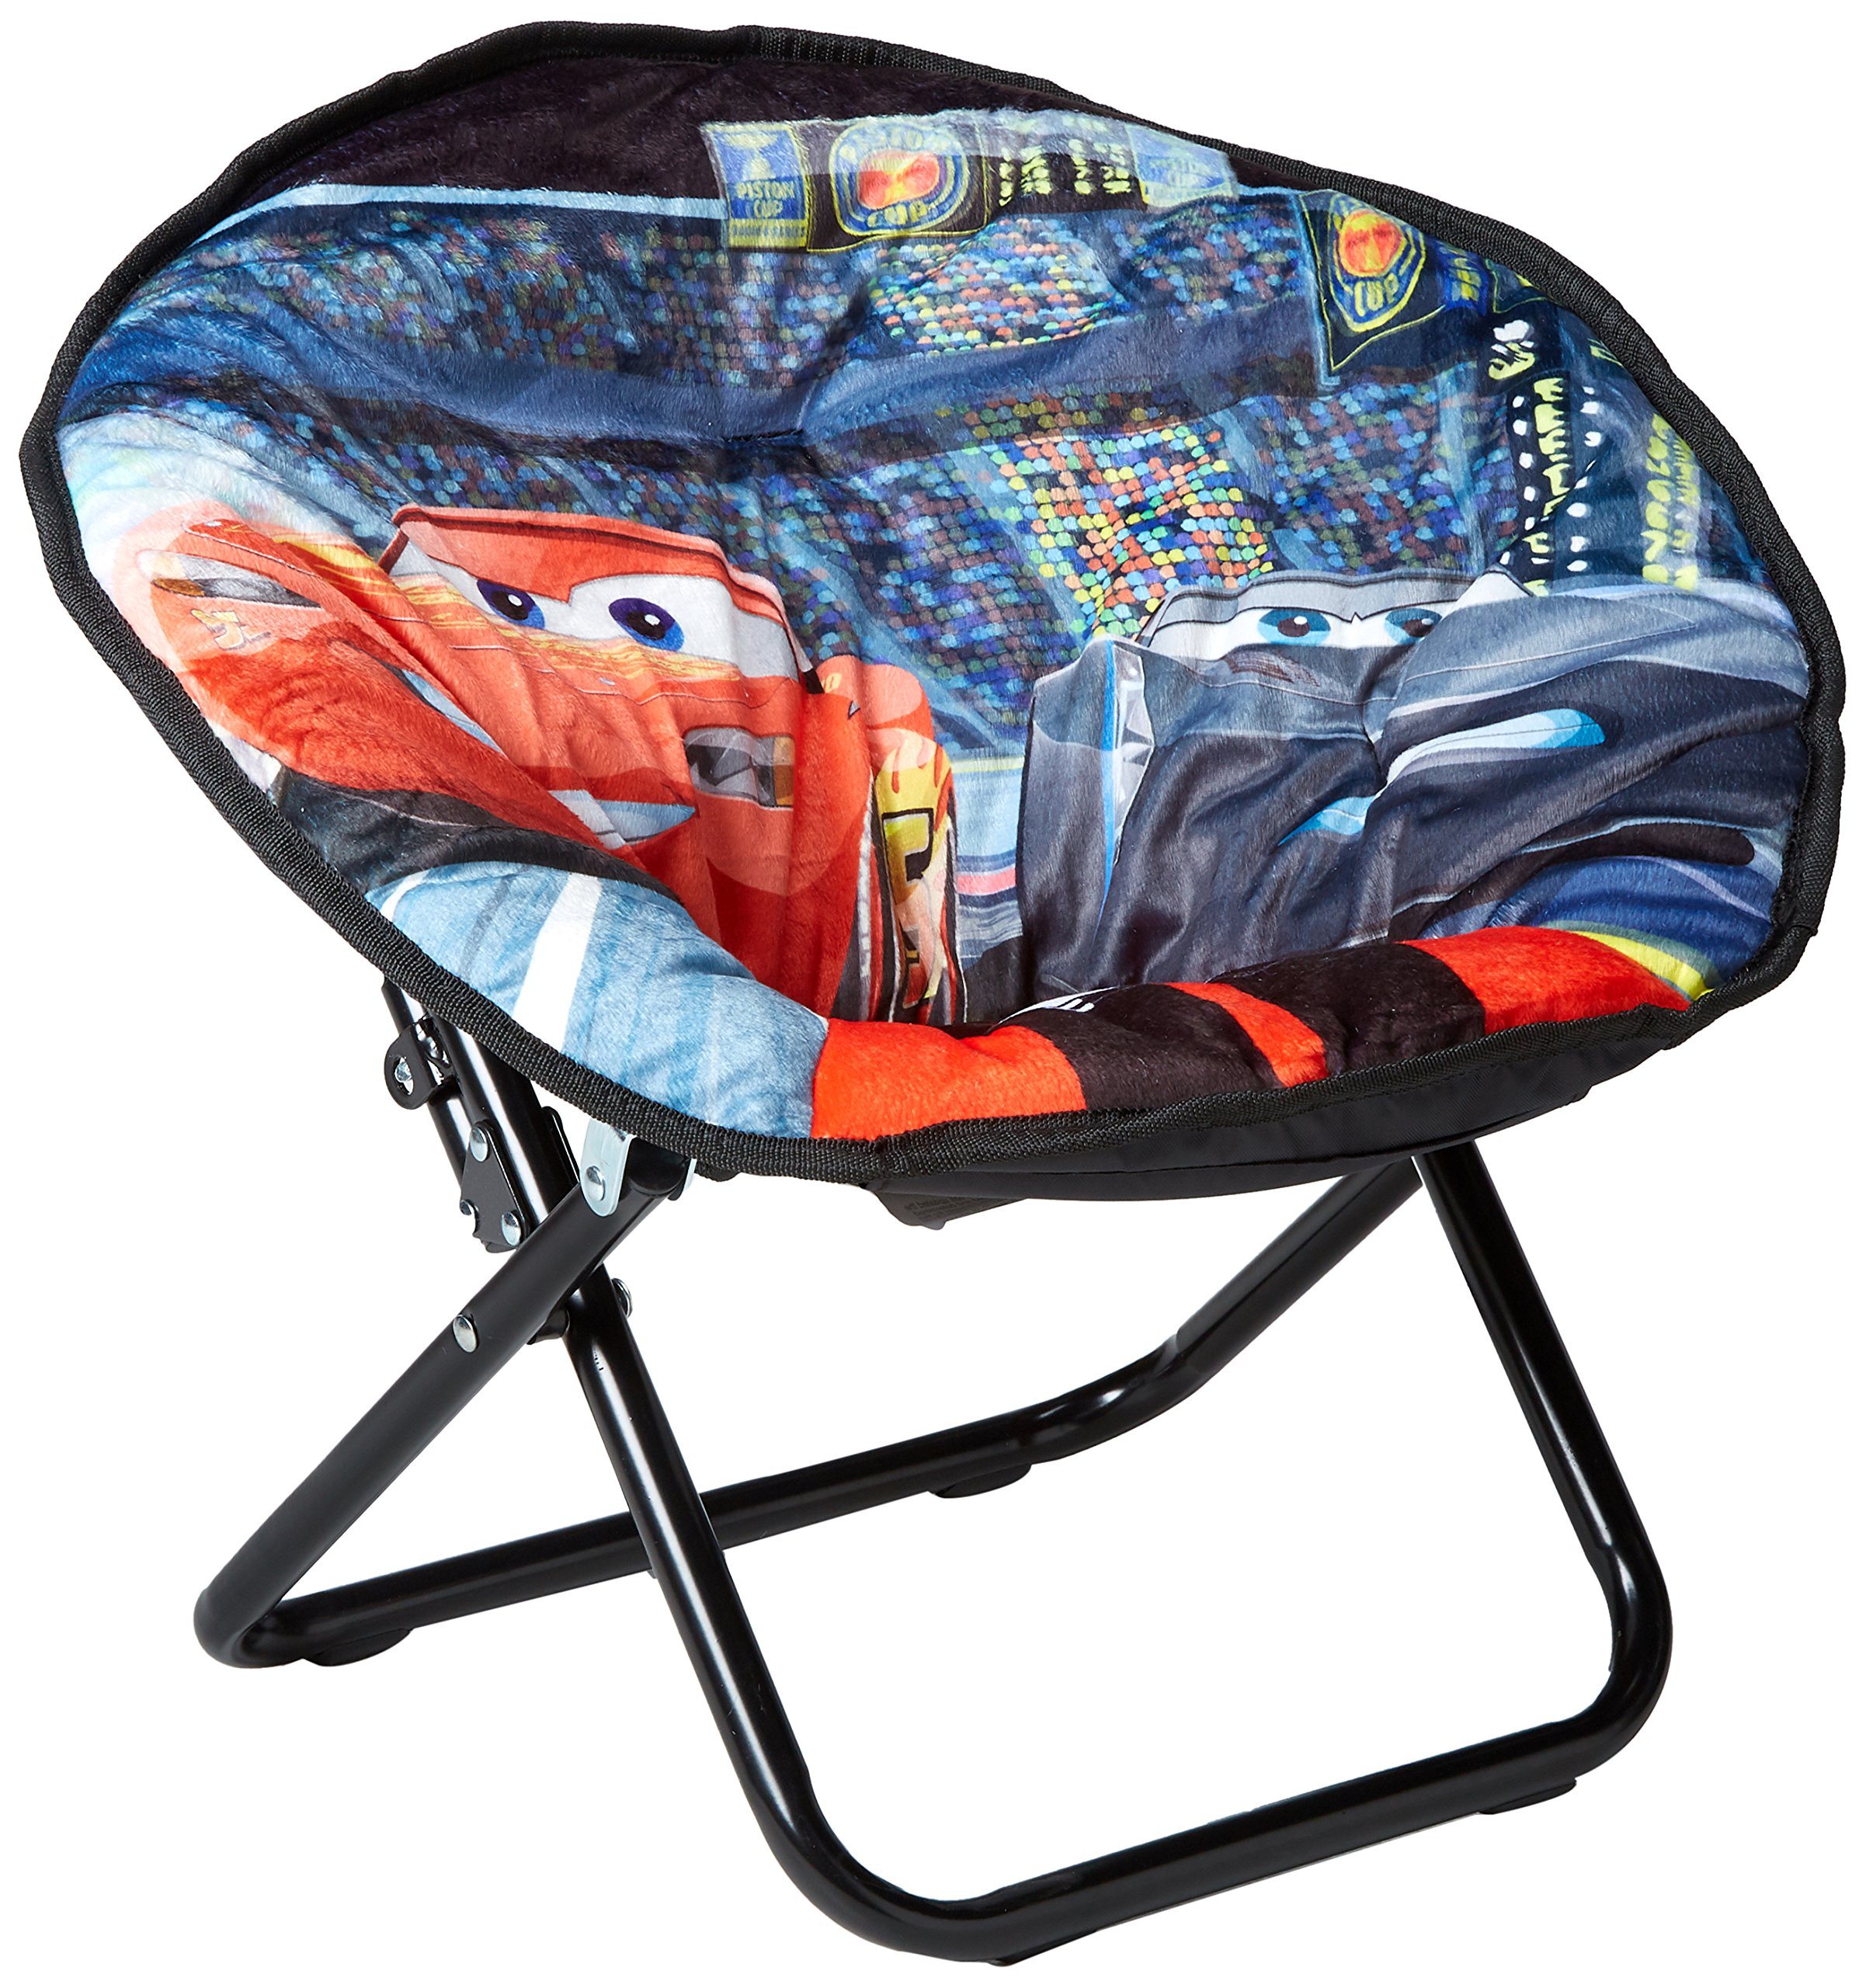 Disney Cars 3 Mini Saucer Chair